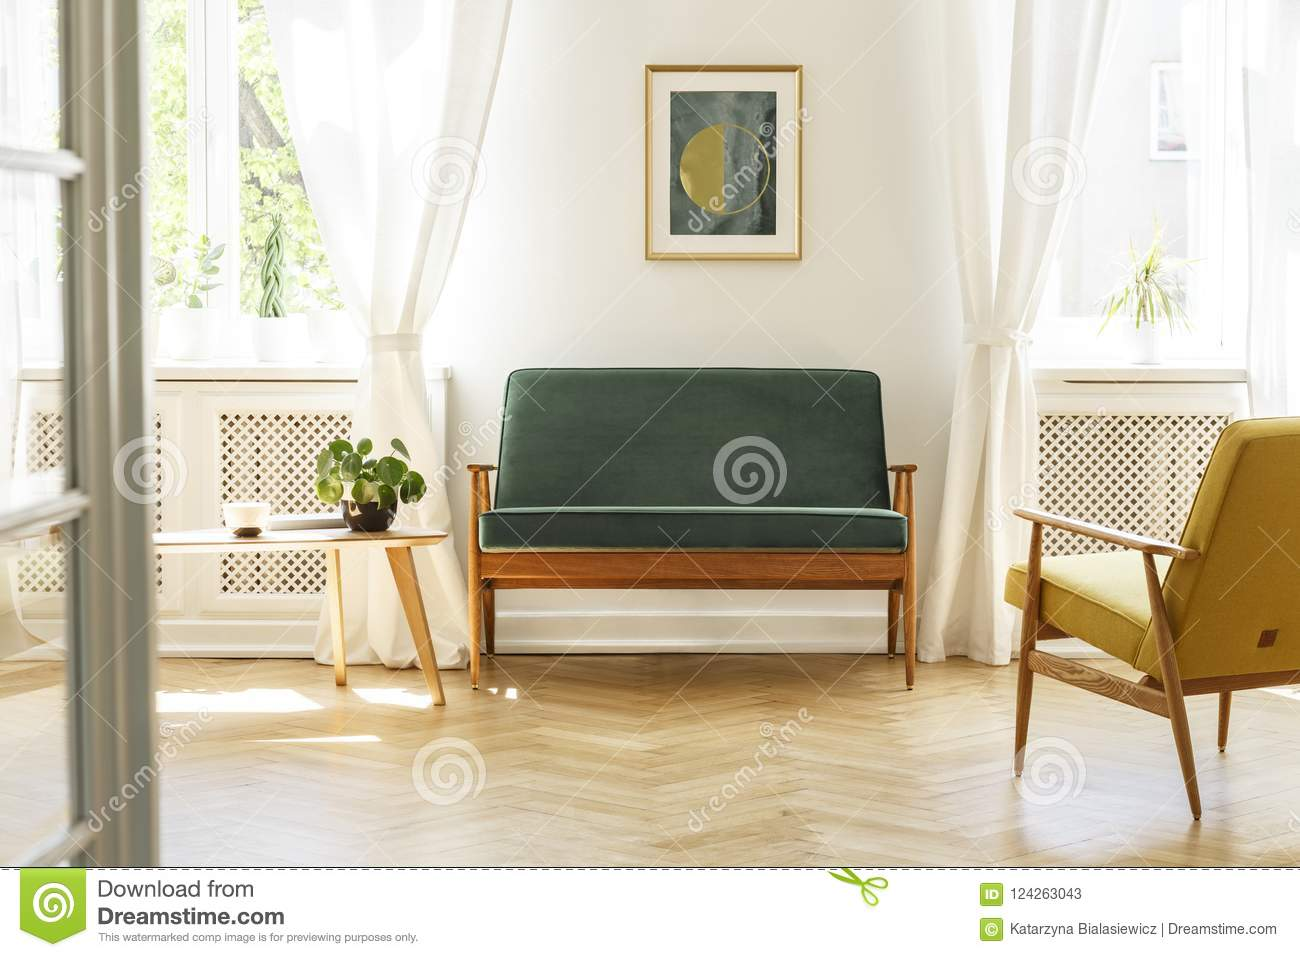 Astonishing Green Sofa With Dark Wooden Frame And A Comfy Yellow Evergreenethics Interior Chair Design Evergreenethicsorg